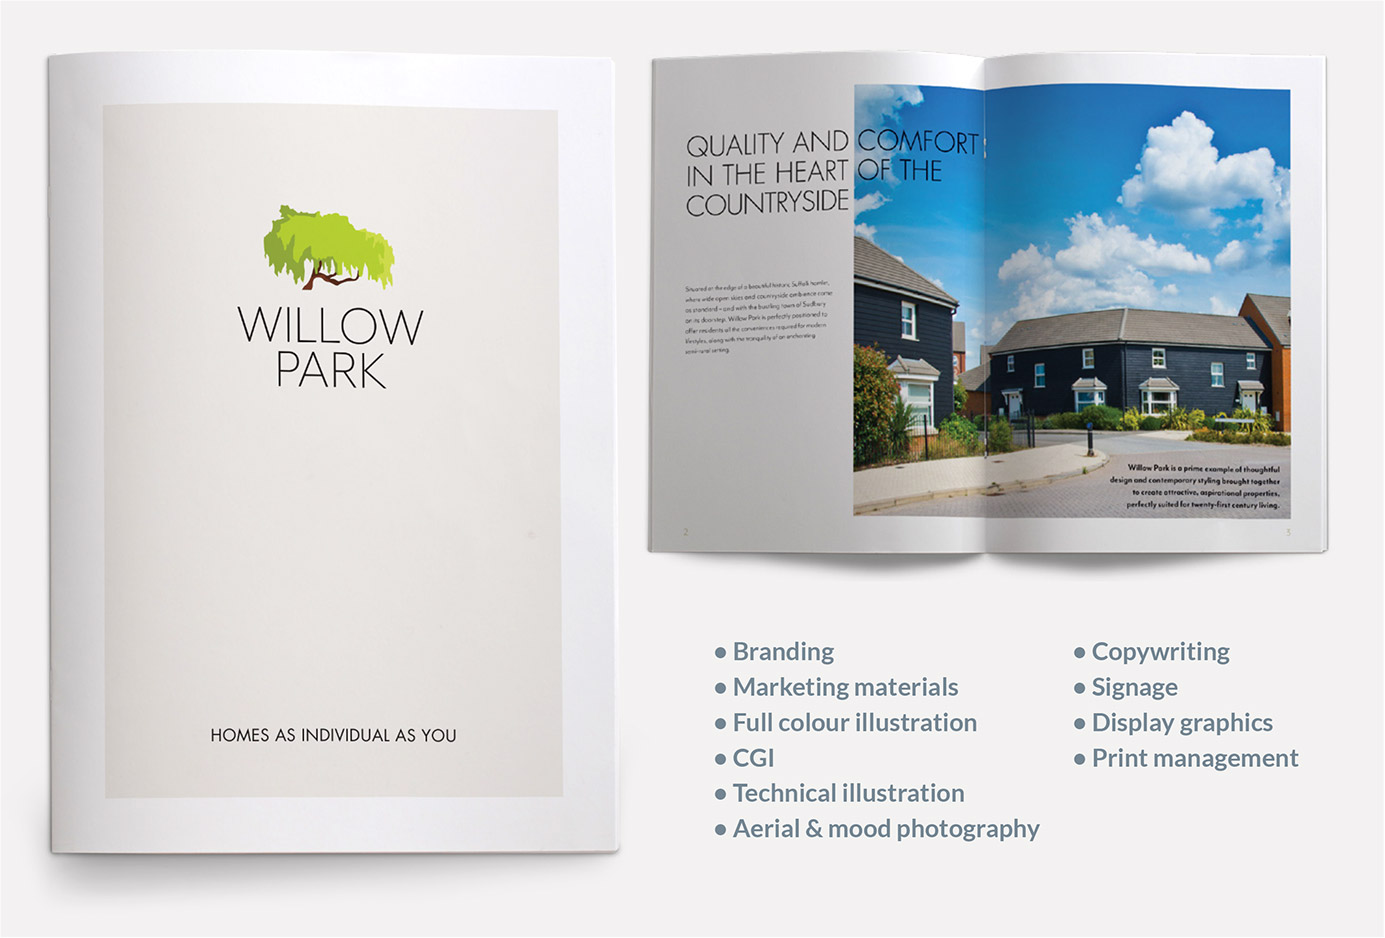 willow-park-image1